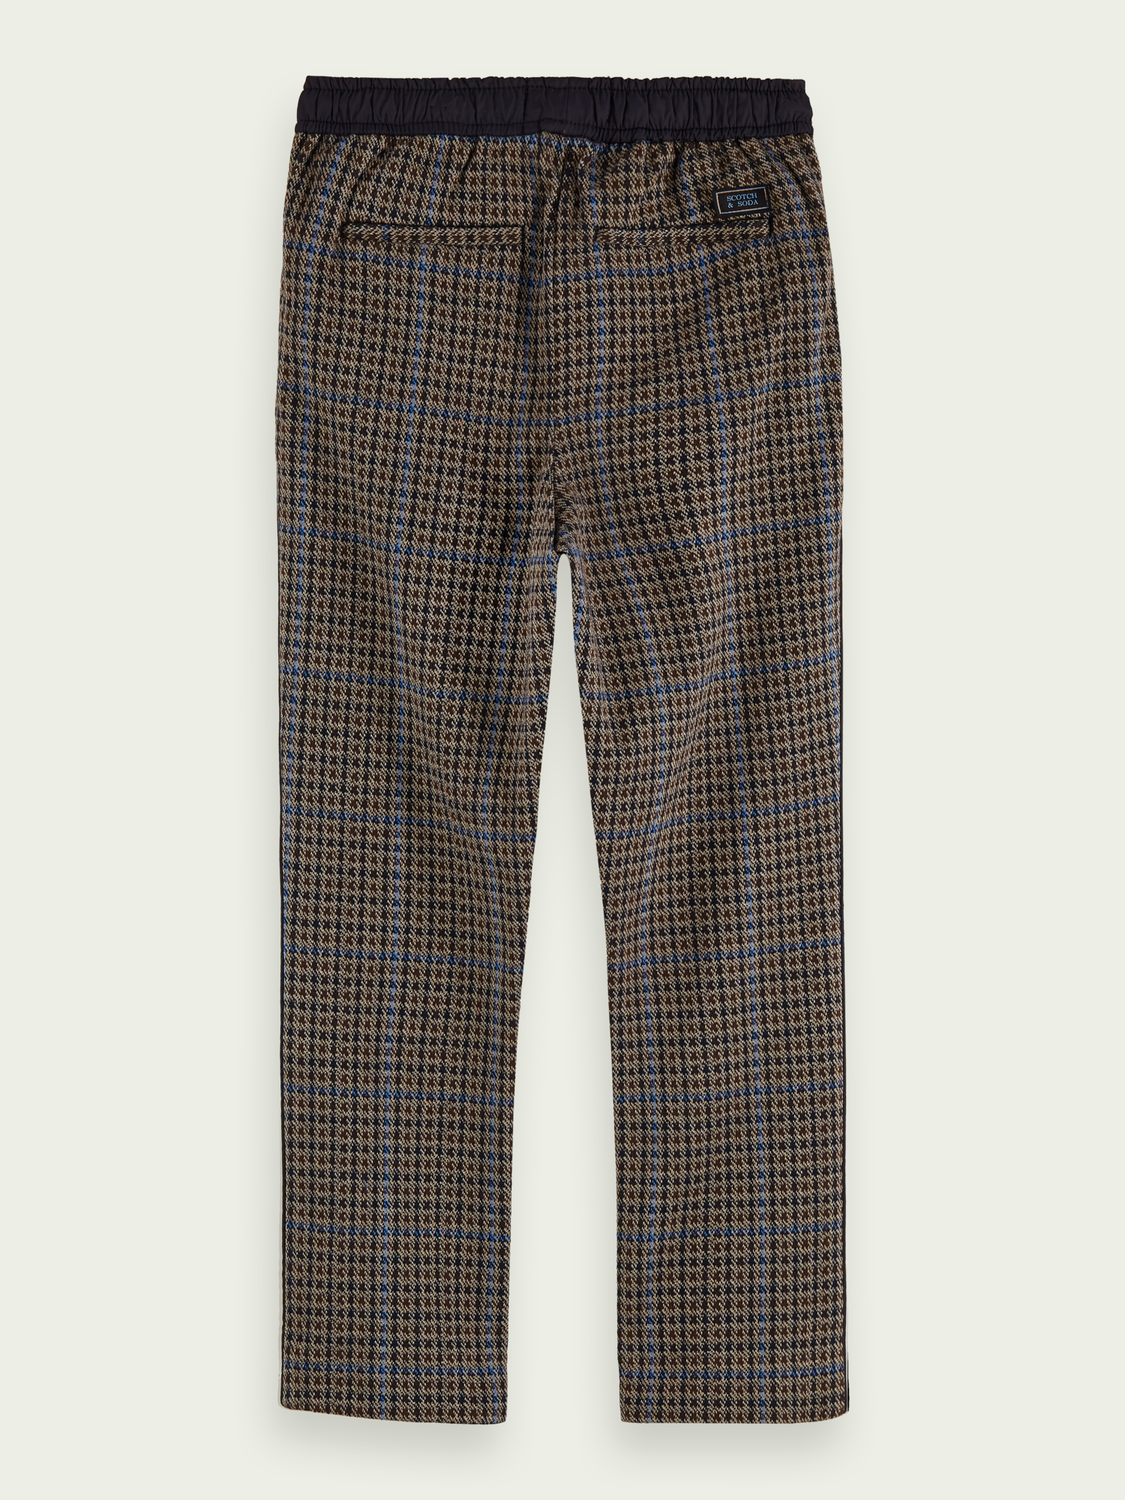 Boys Cotton knit pants | Relaxed slim fit